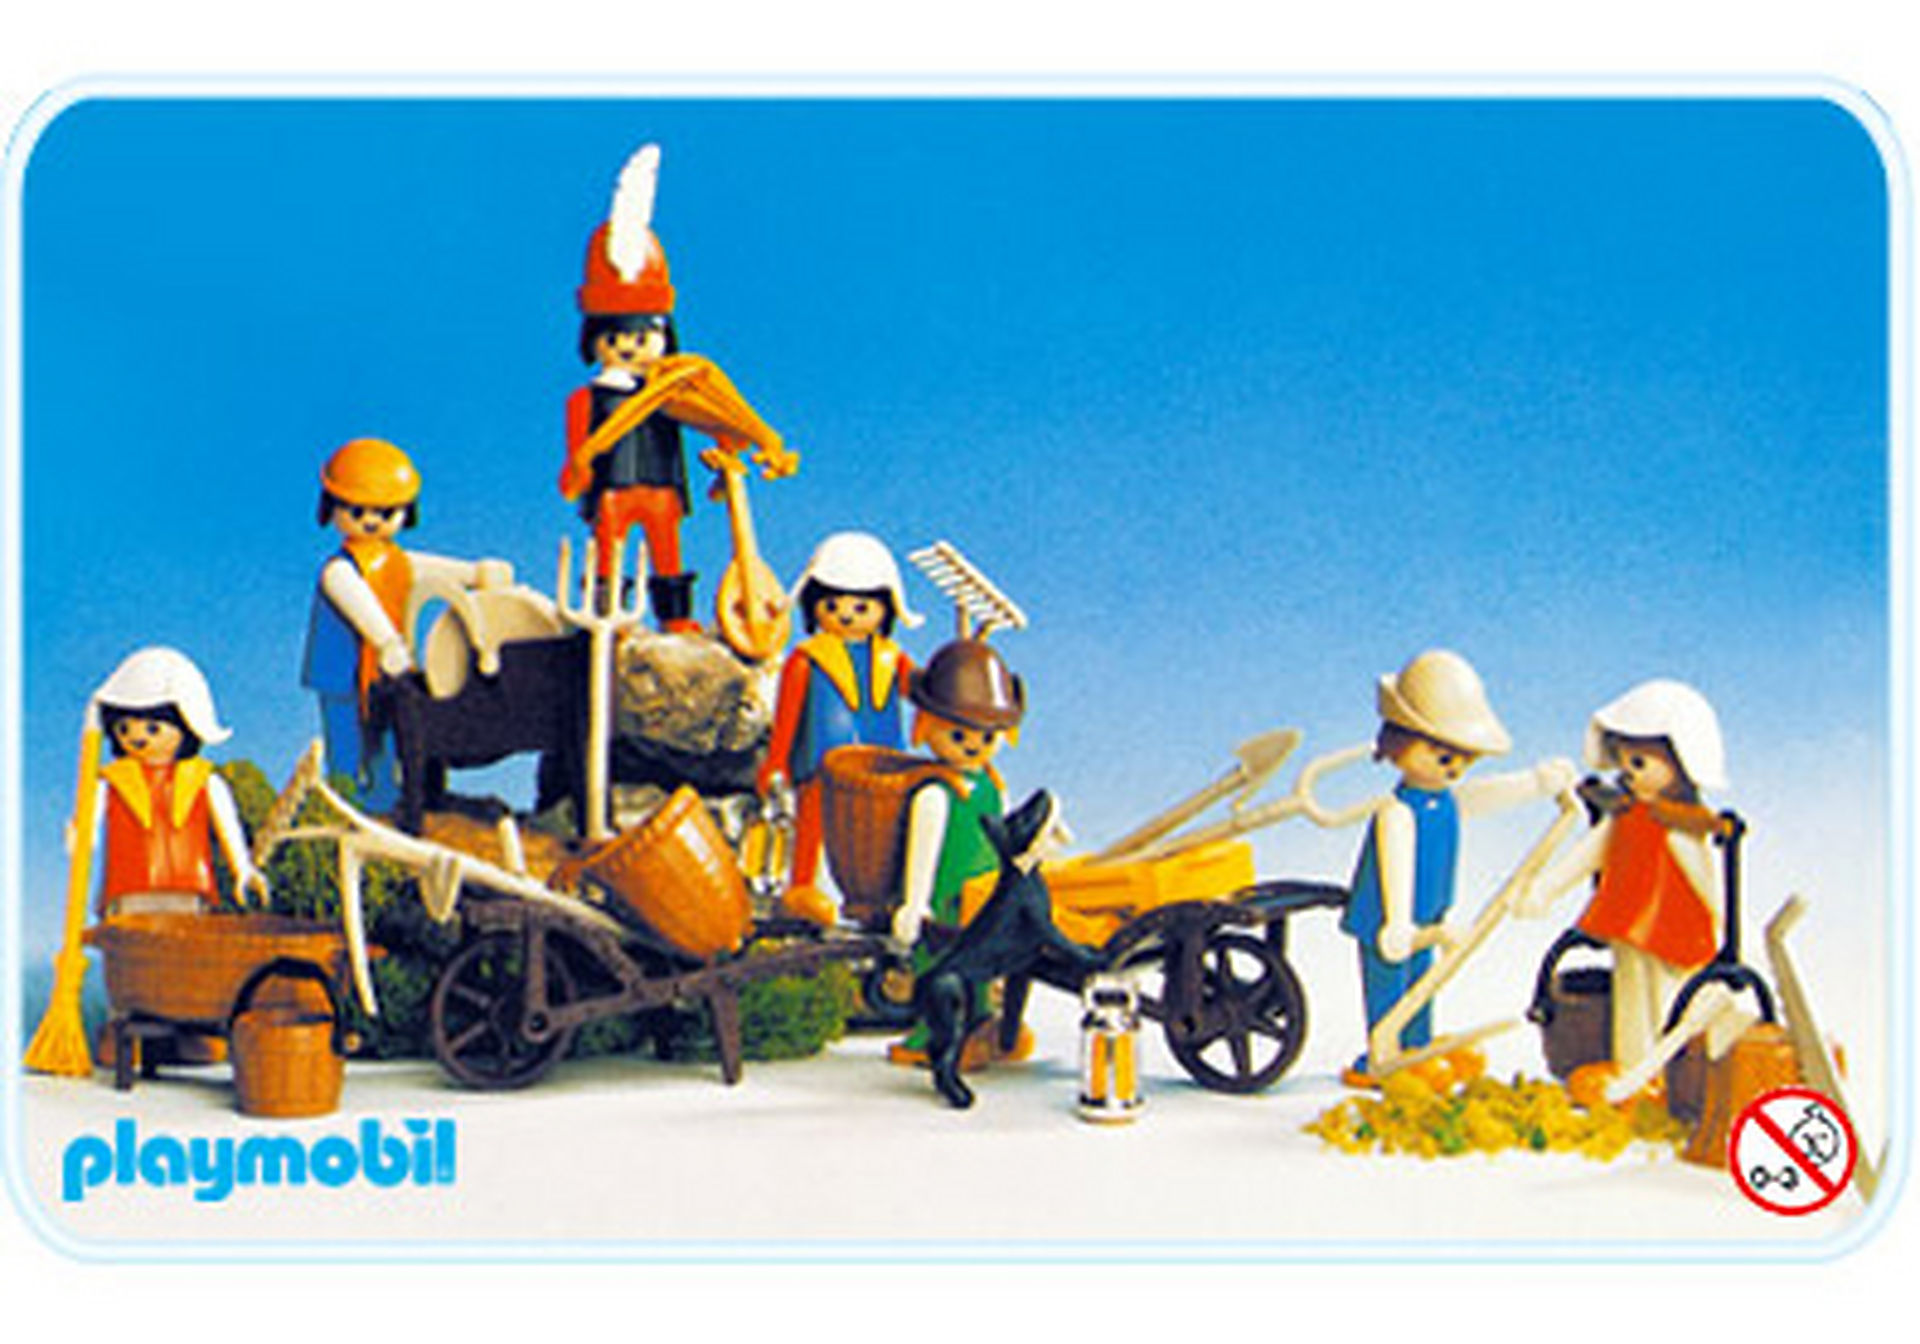 http://media.playmobil.com/i/playmobil/3411-A_product_detail/Super Set Paysans